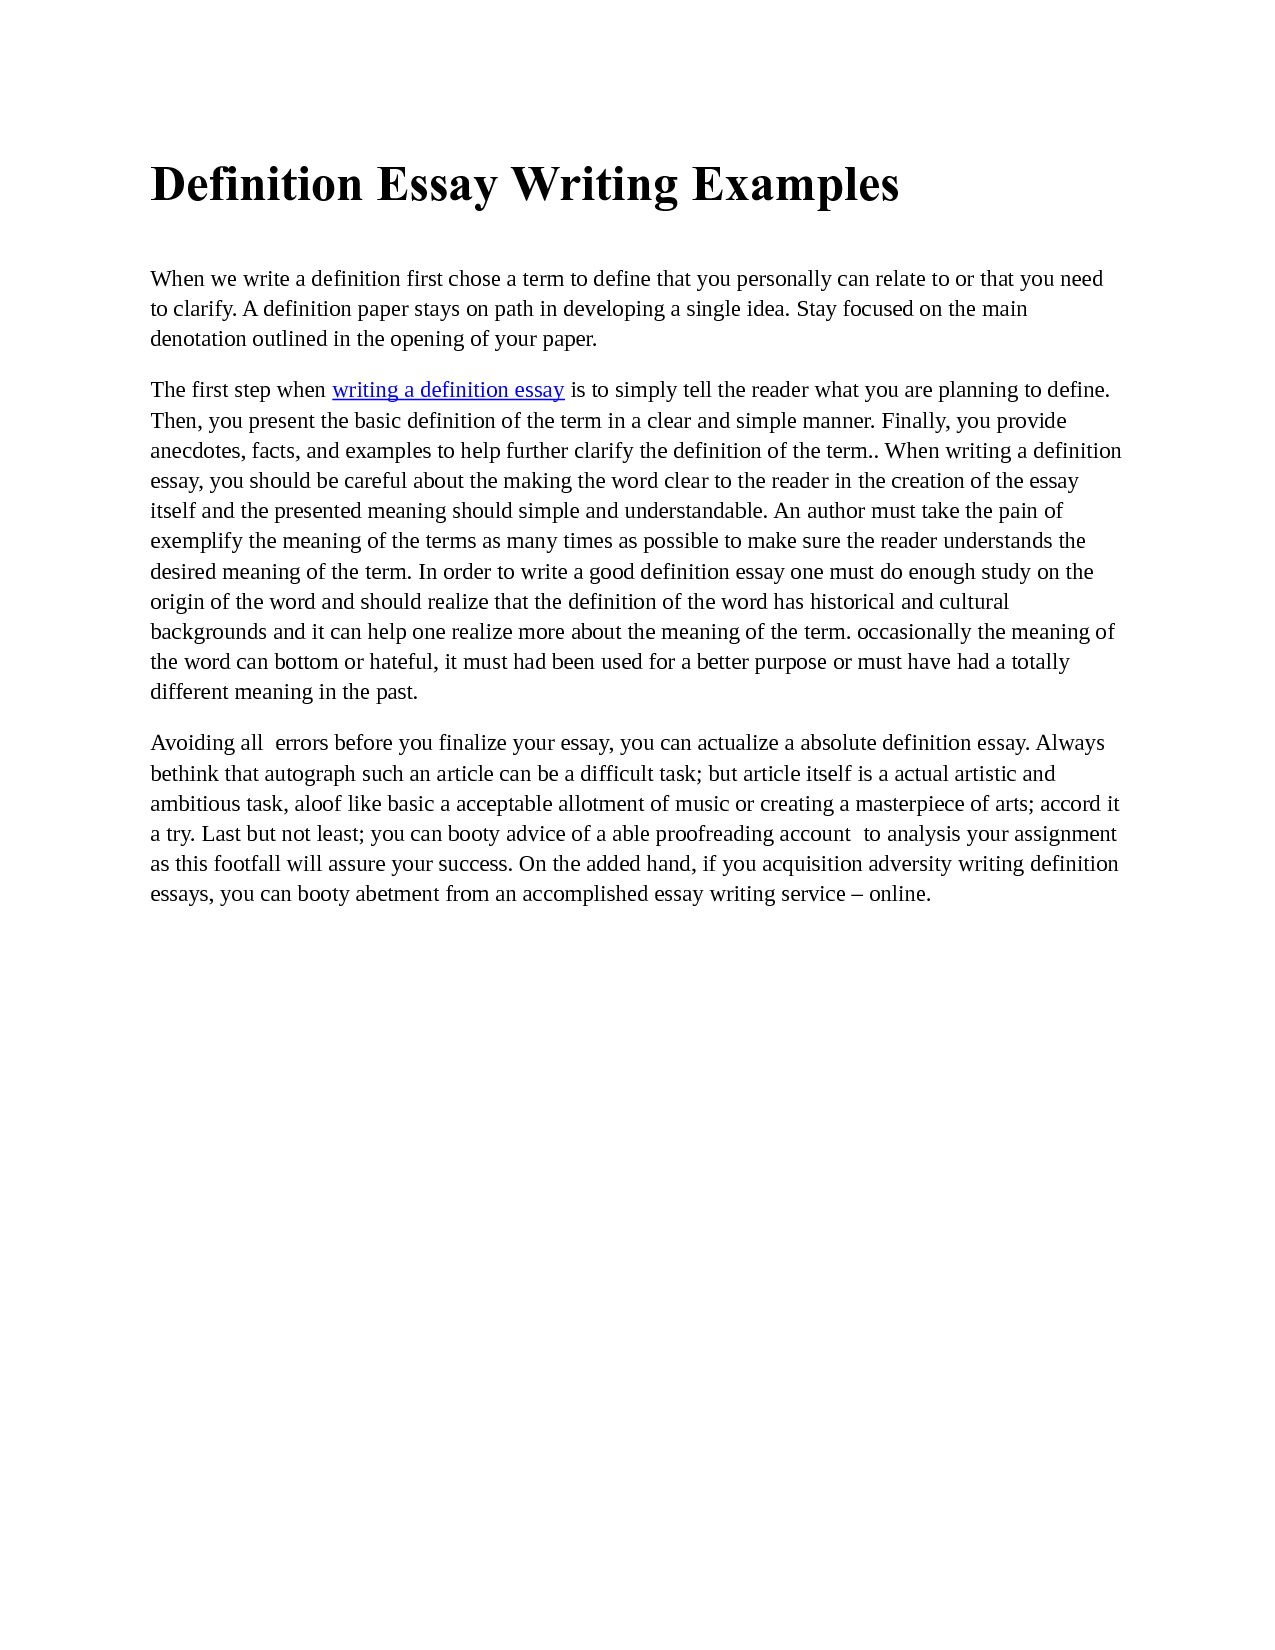 www essay writing This resource begins with a general description of essay writing and moves to a discussion of common essay genres students may encounter across the curriculum.